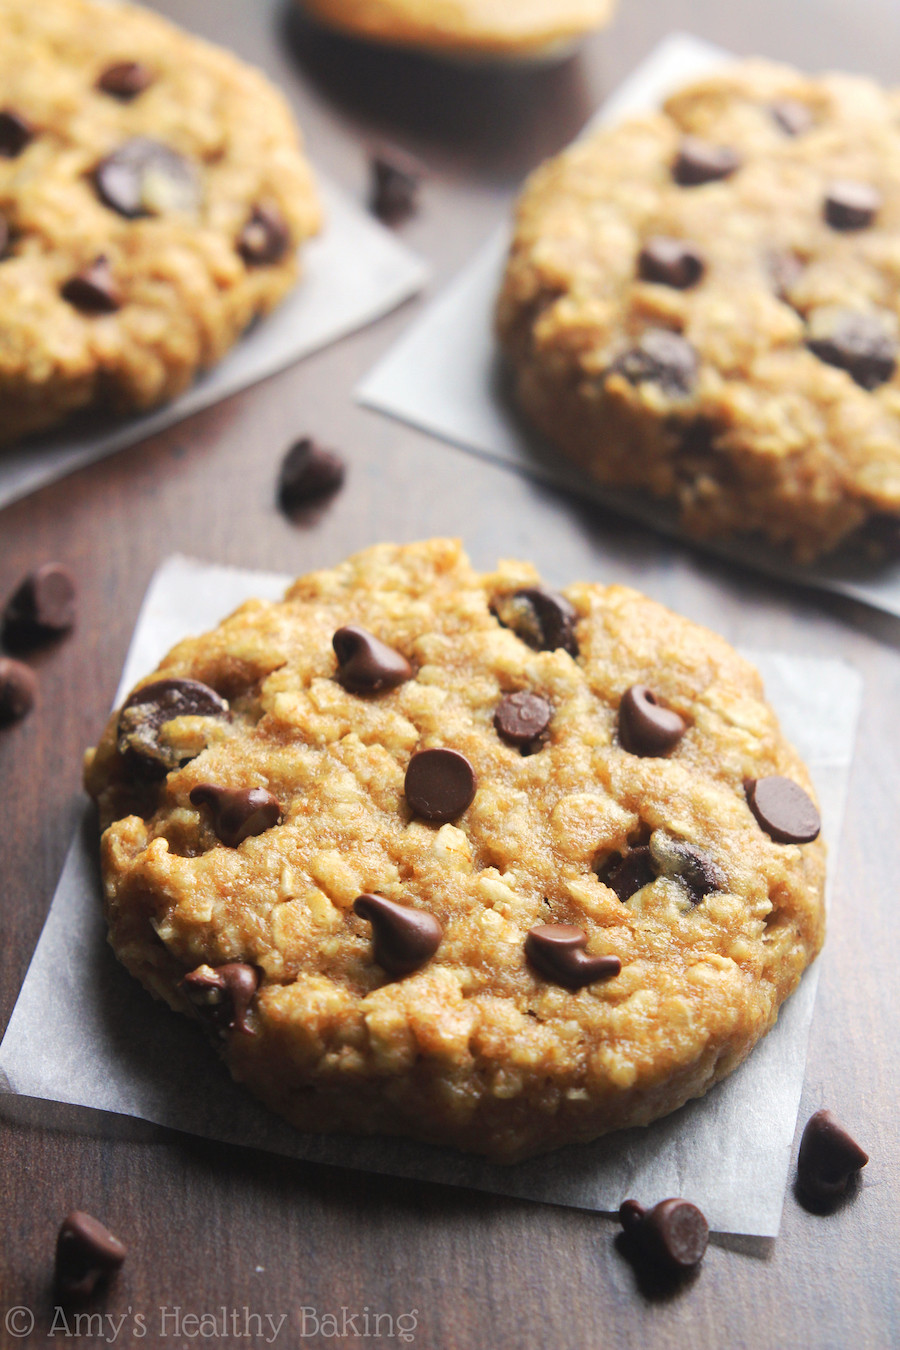 Healthy Oatmeal Desserts  Chocolate Chip Peanut Butter Oatmeal Cookies Recipe Video